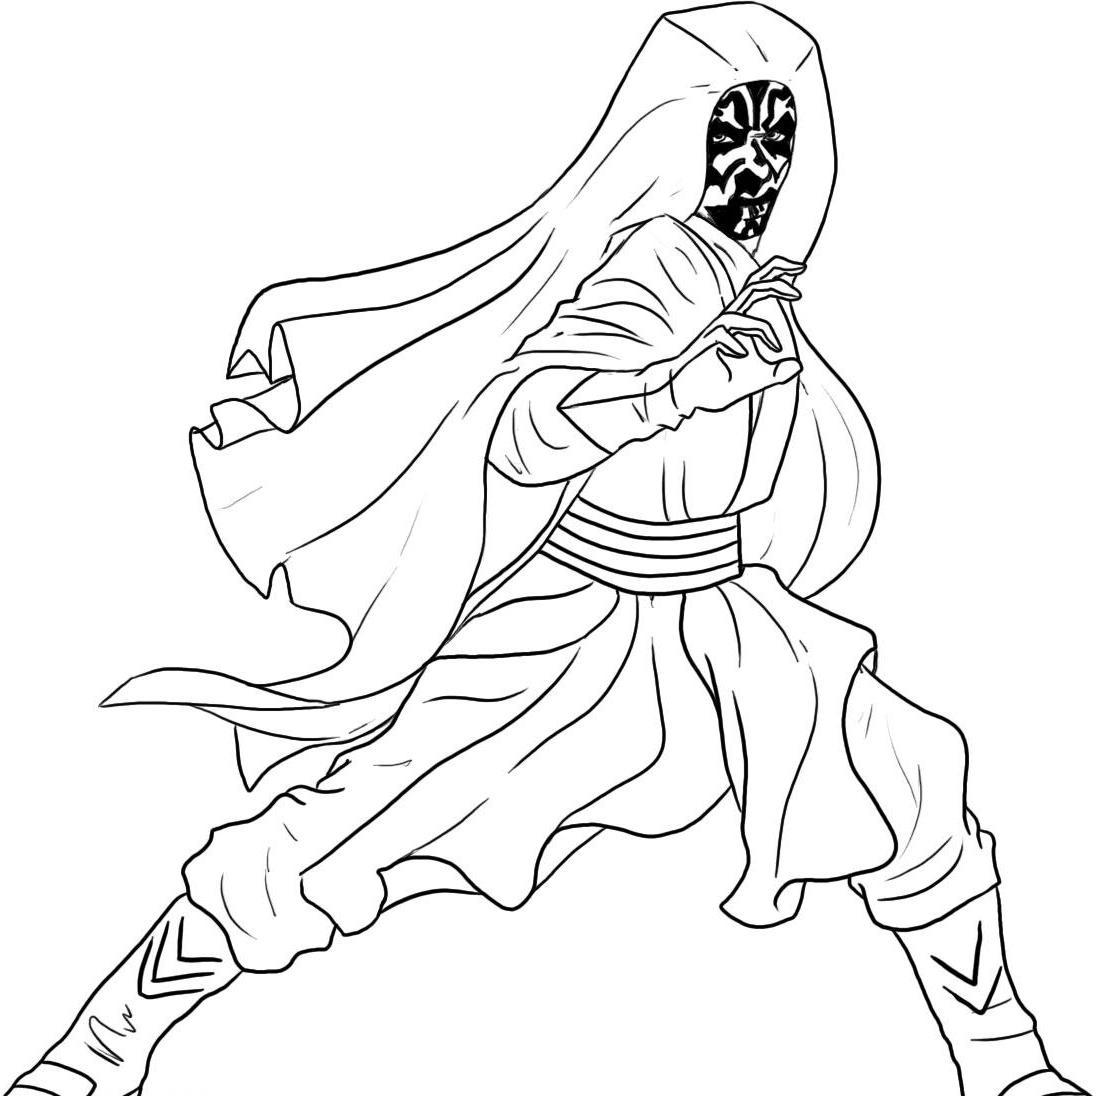 Darth Maul Coloring Page New How to Draw Step by Star Wars Download Of Unique Star Wars Cartoon Characters Coloring Pages Collection to Print